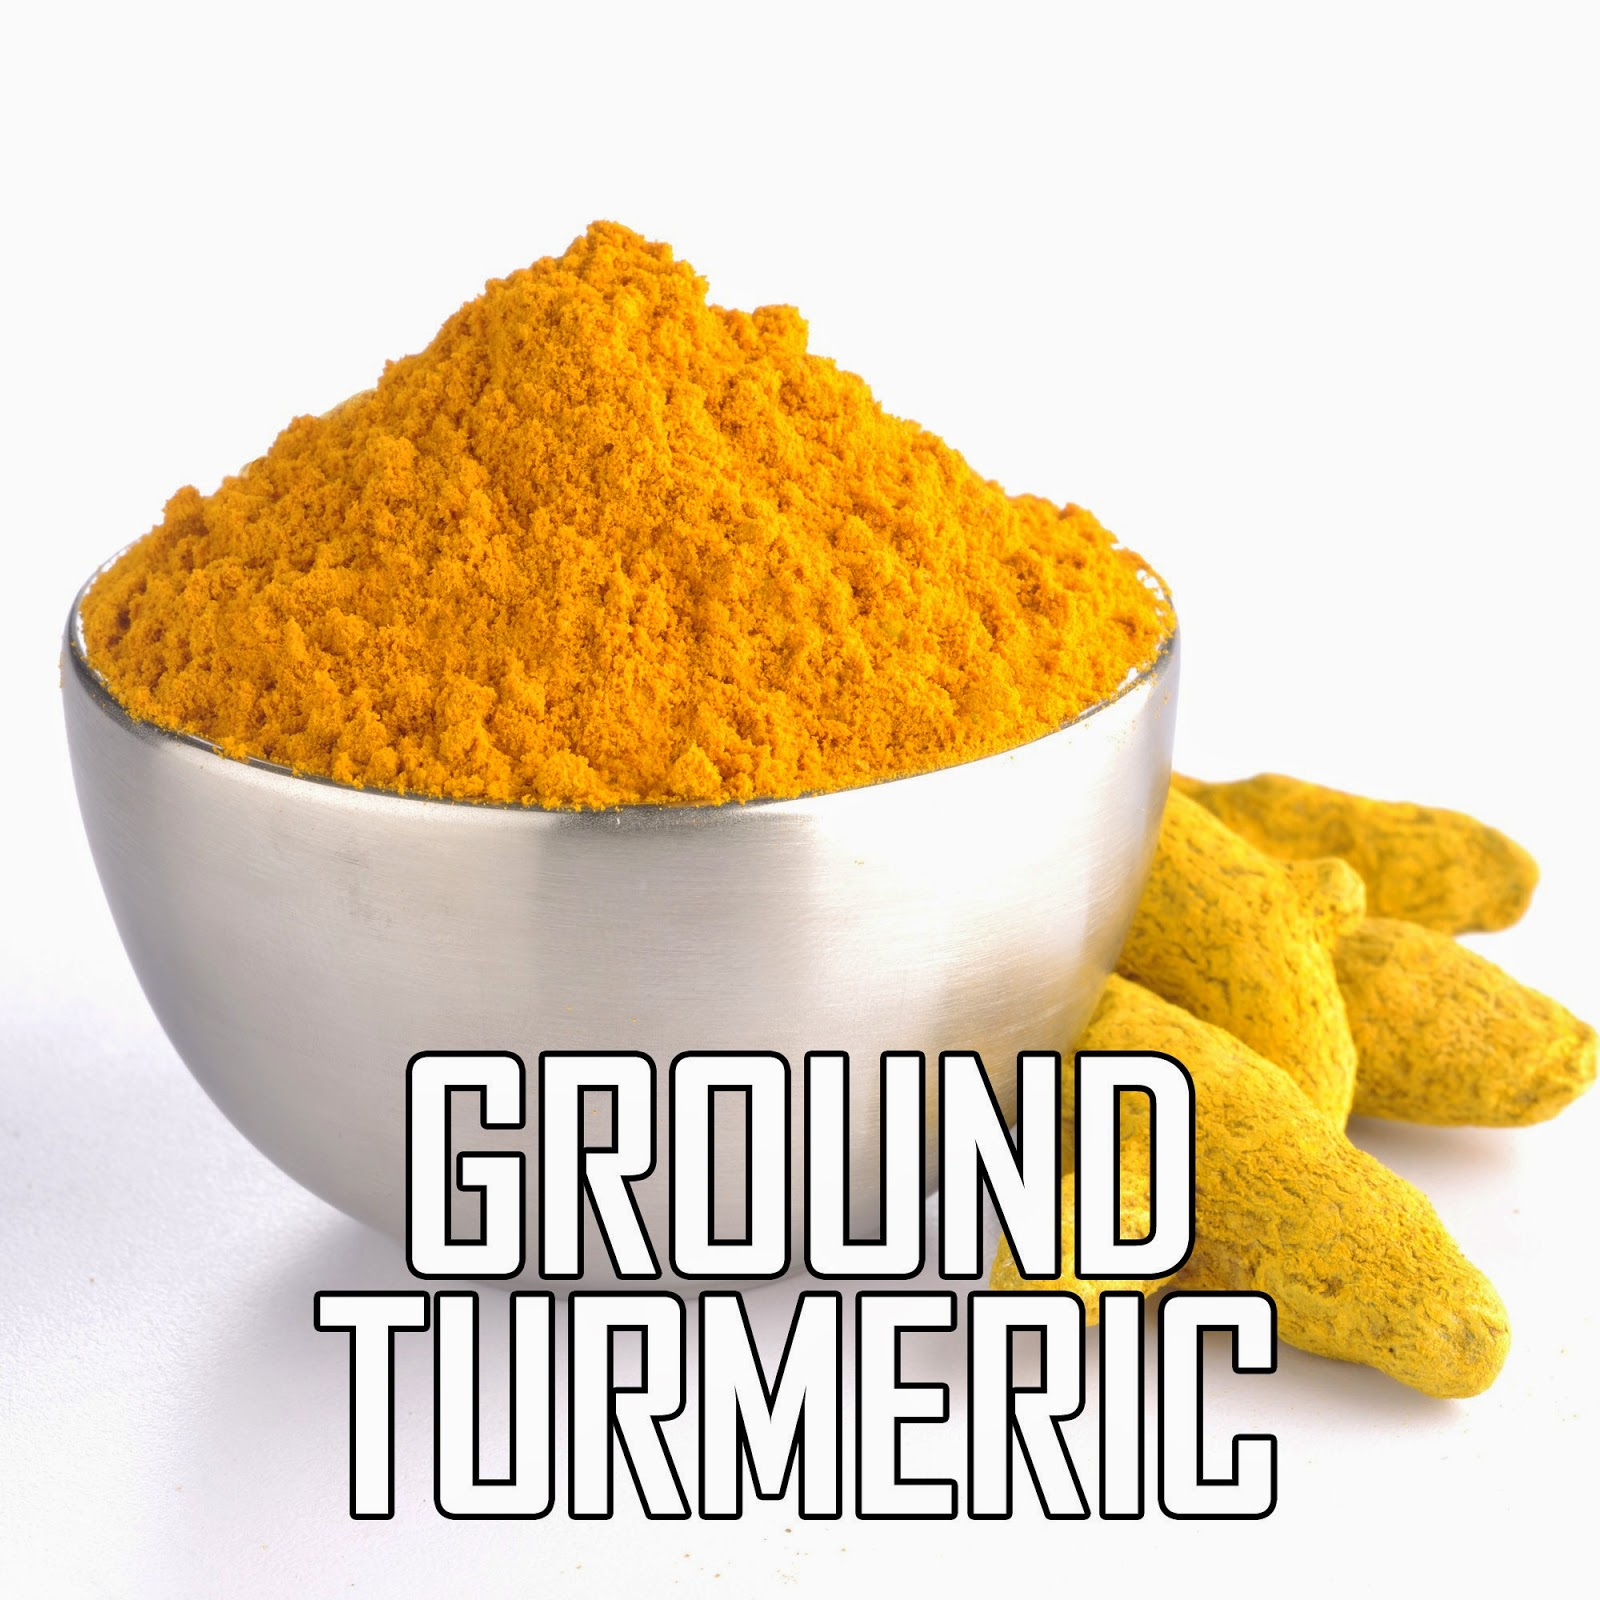 NCDEX Turmeric, Agri Commodity Tips, free agri calls, Free Agri Tips, Best Trading Tips